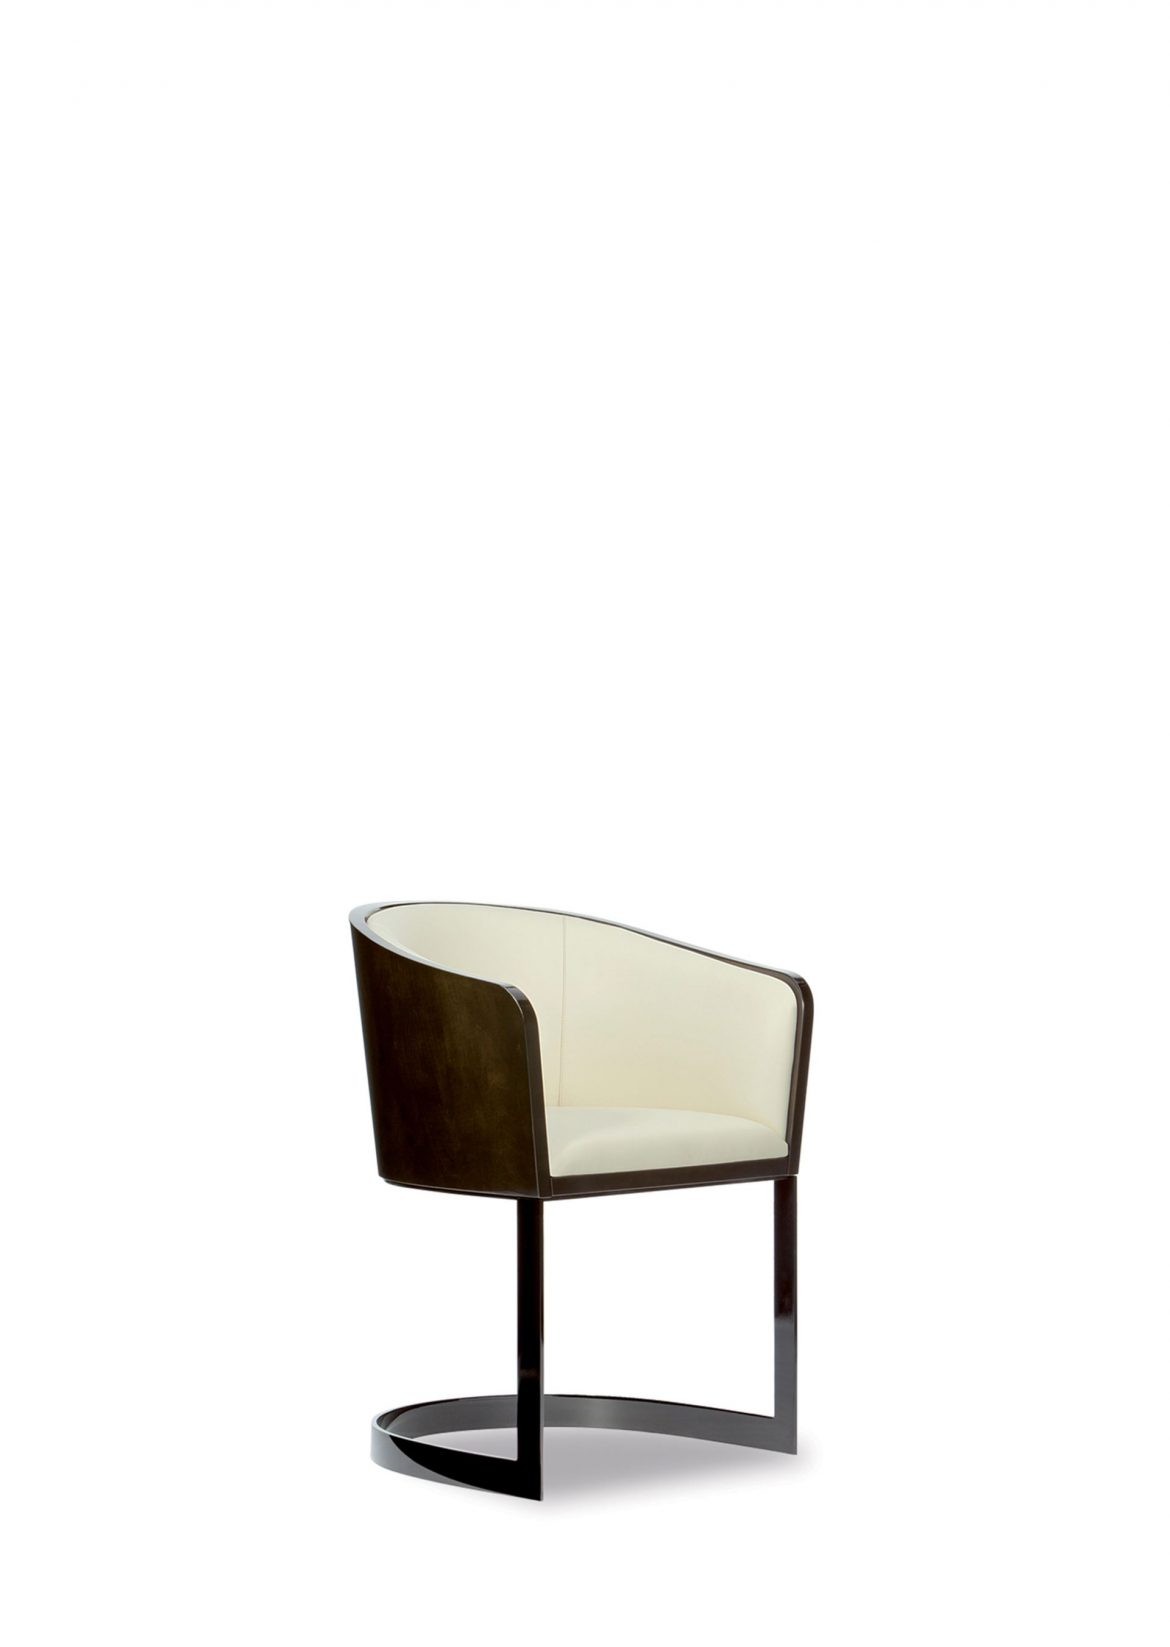 Top Dining Chairs Ideias [object object] Top Dining Chairs Ideas : Get your Inspiration 58052530DU 16 d